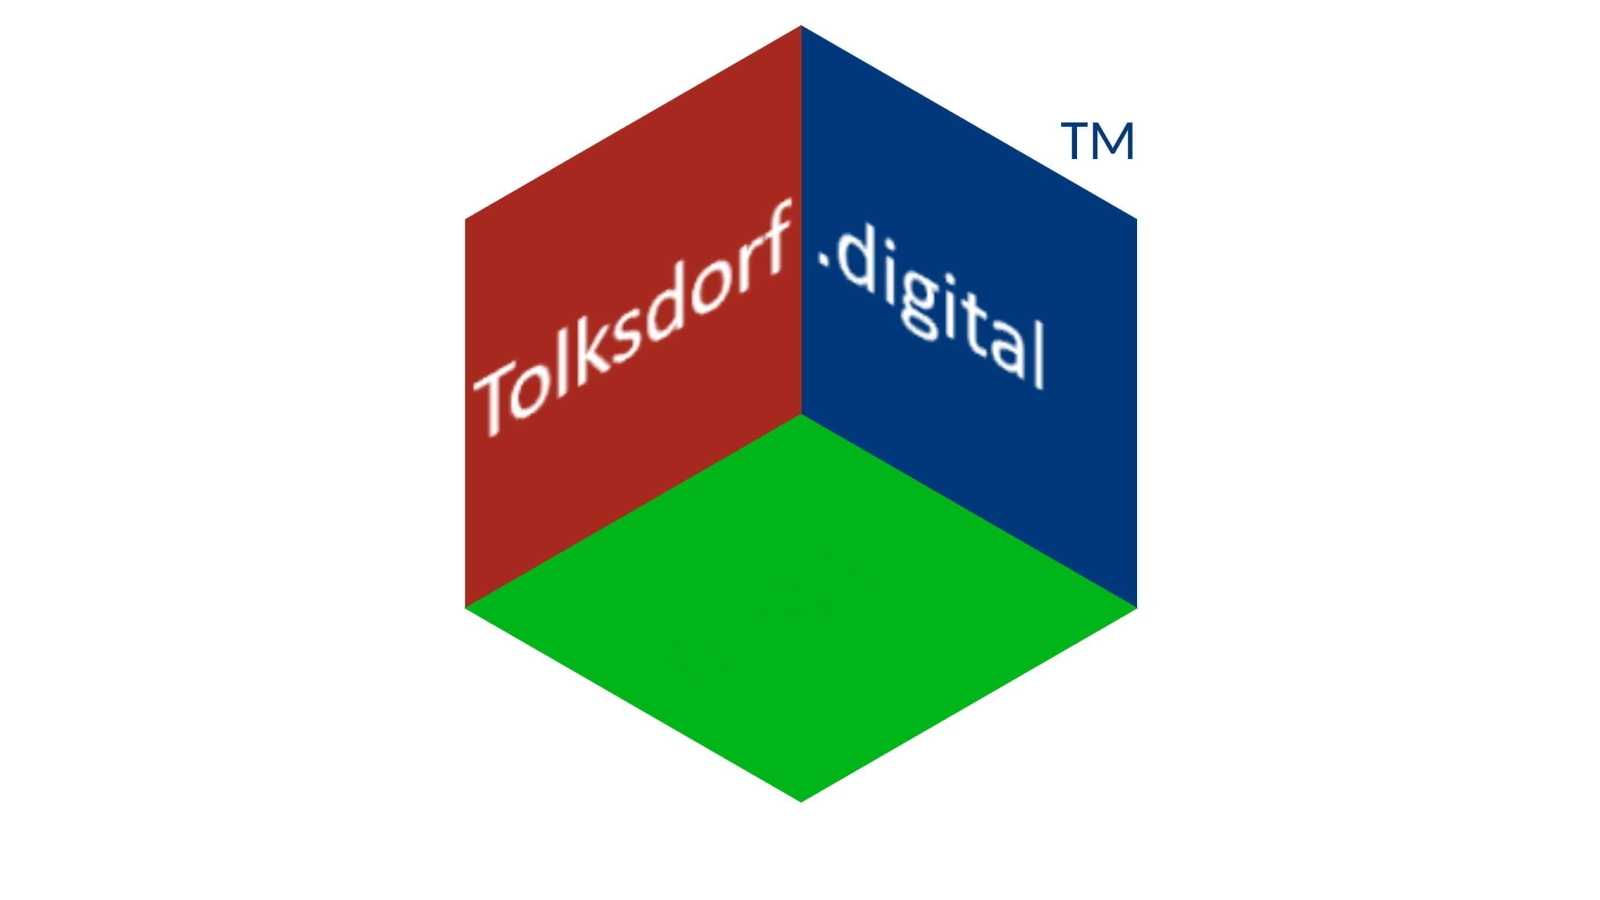 Tolksdorf.digital GmbH_1600